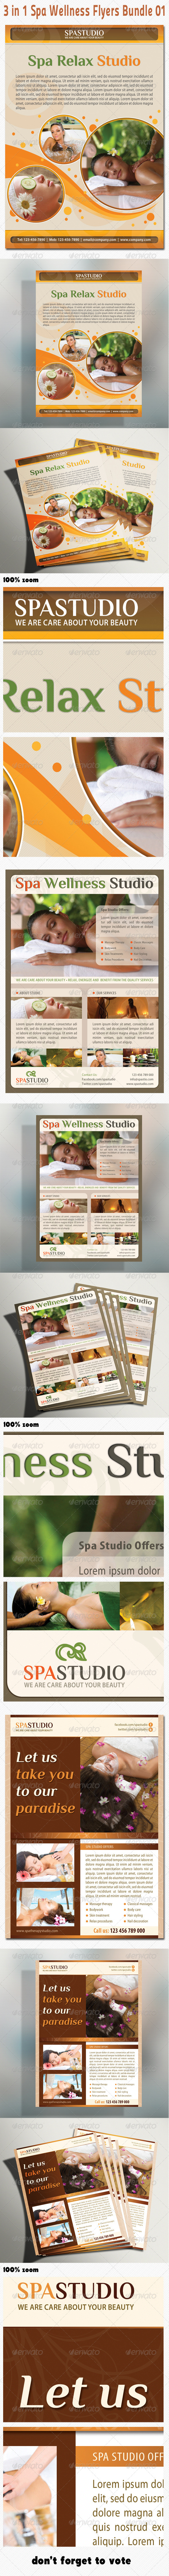 GraphicRiver 3 in 1 Spa Wellness Flyers Bundle 01 5387840